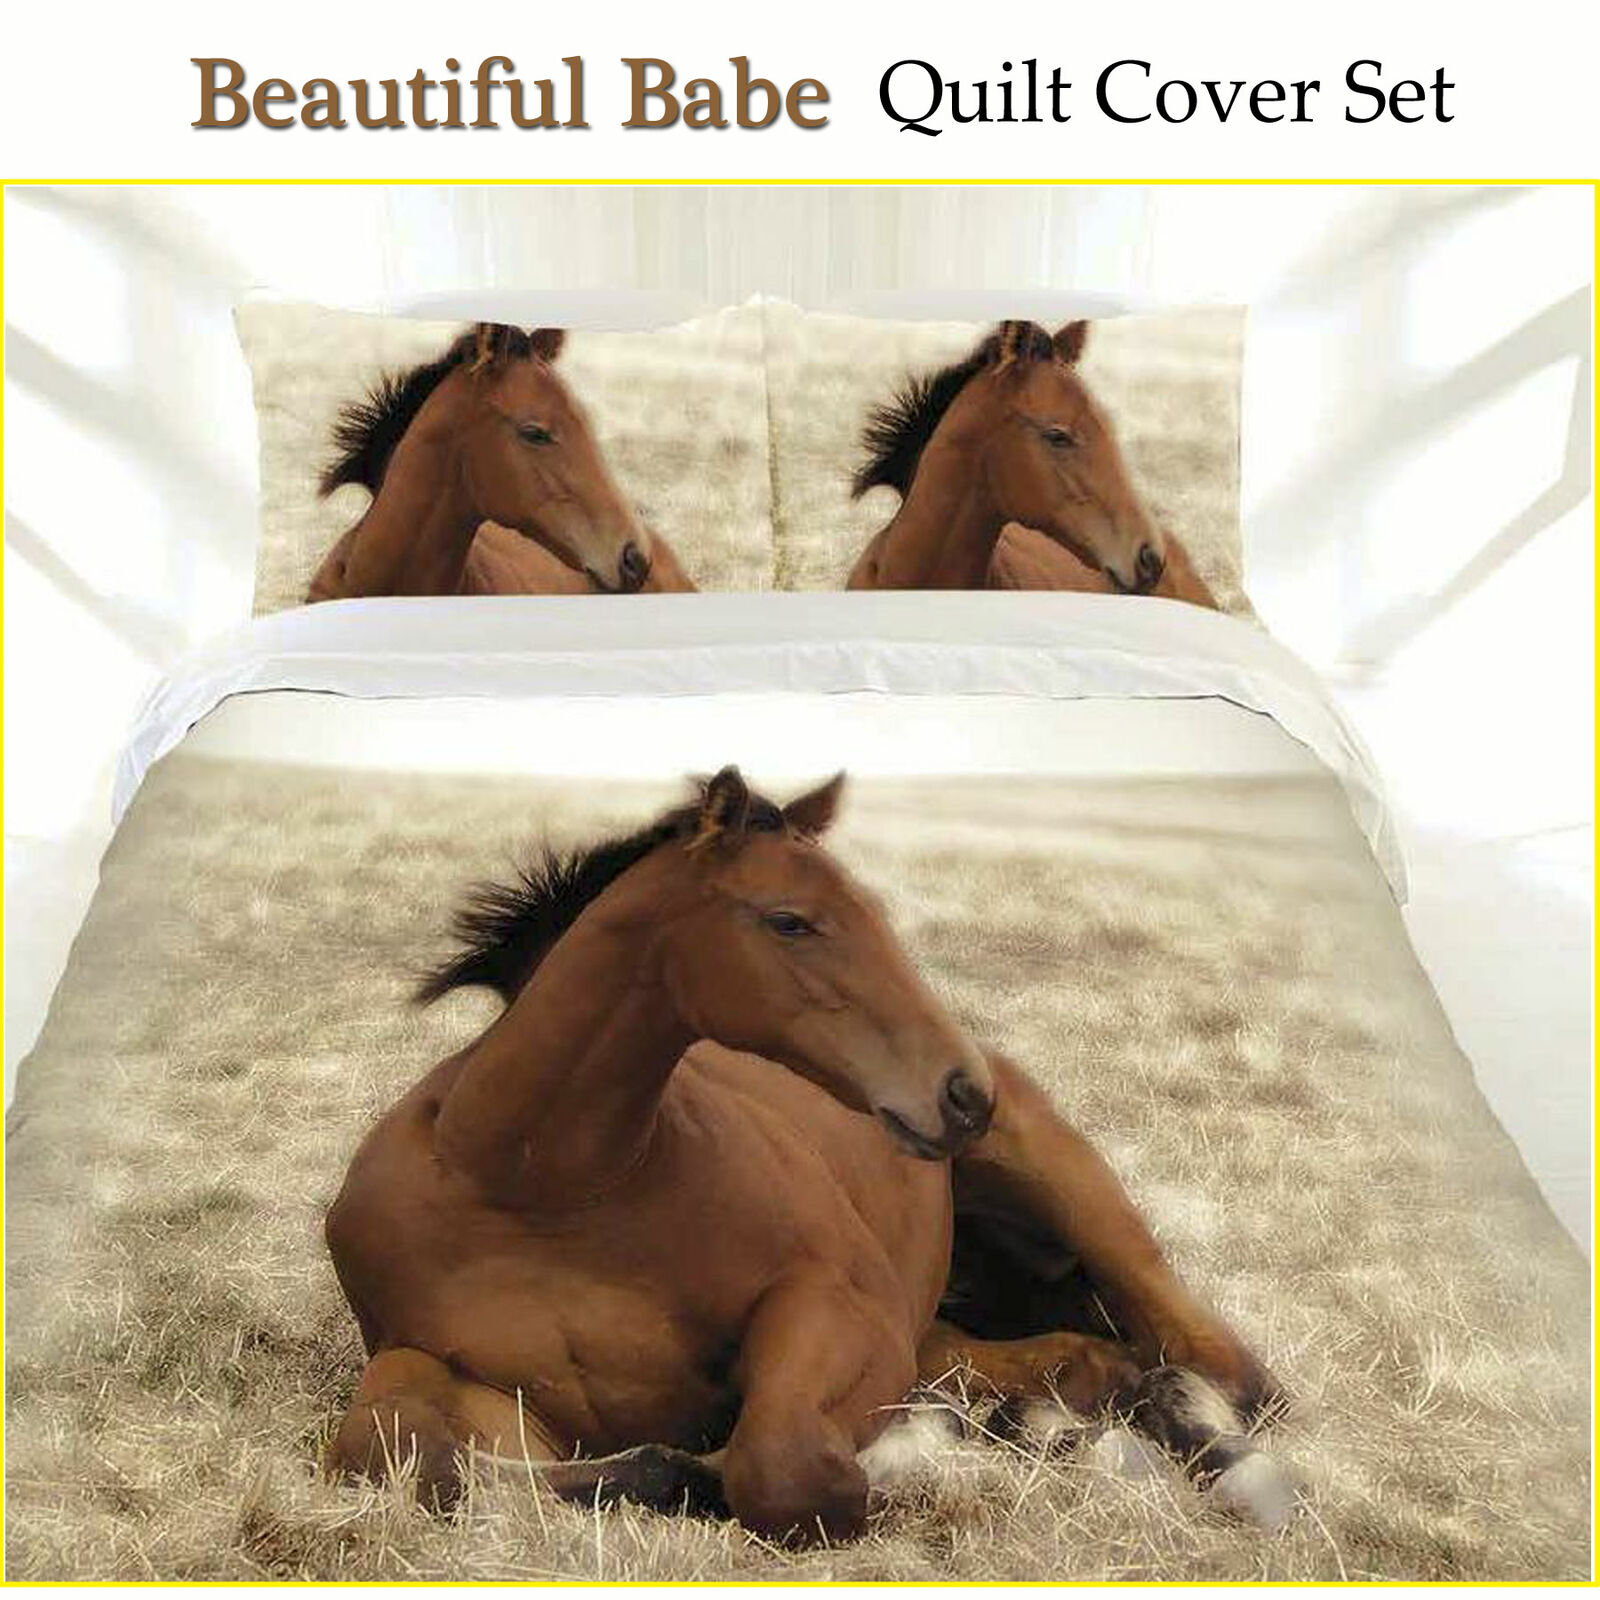 Beautiful Babe Horse Quilt Cover Set by Just Home SINGLE DOUBLE QUEEN KING